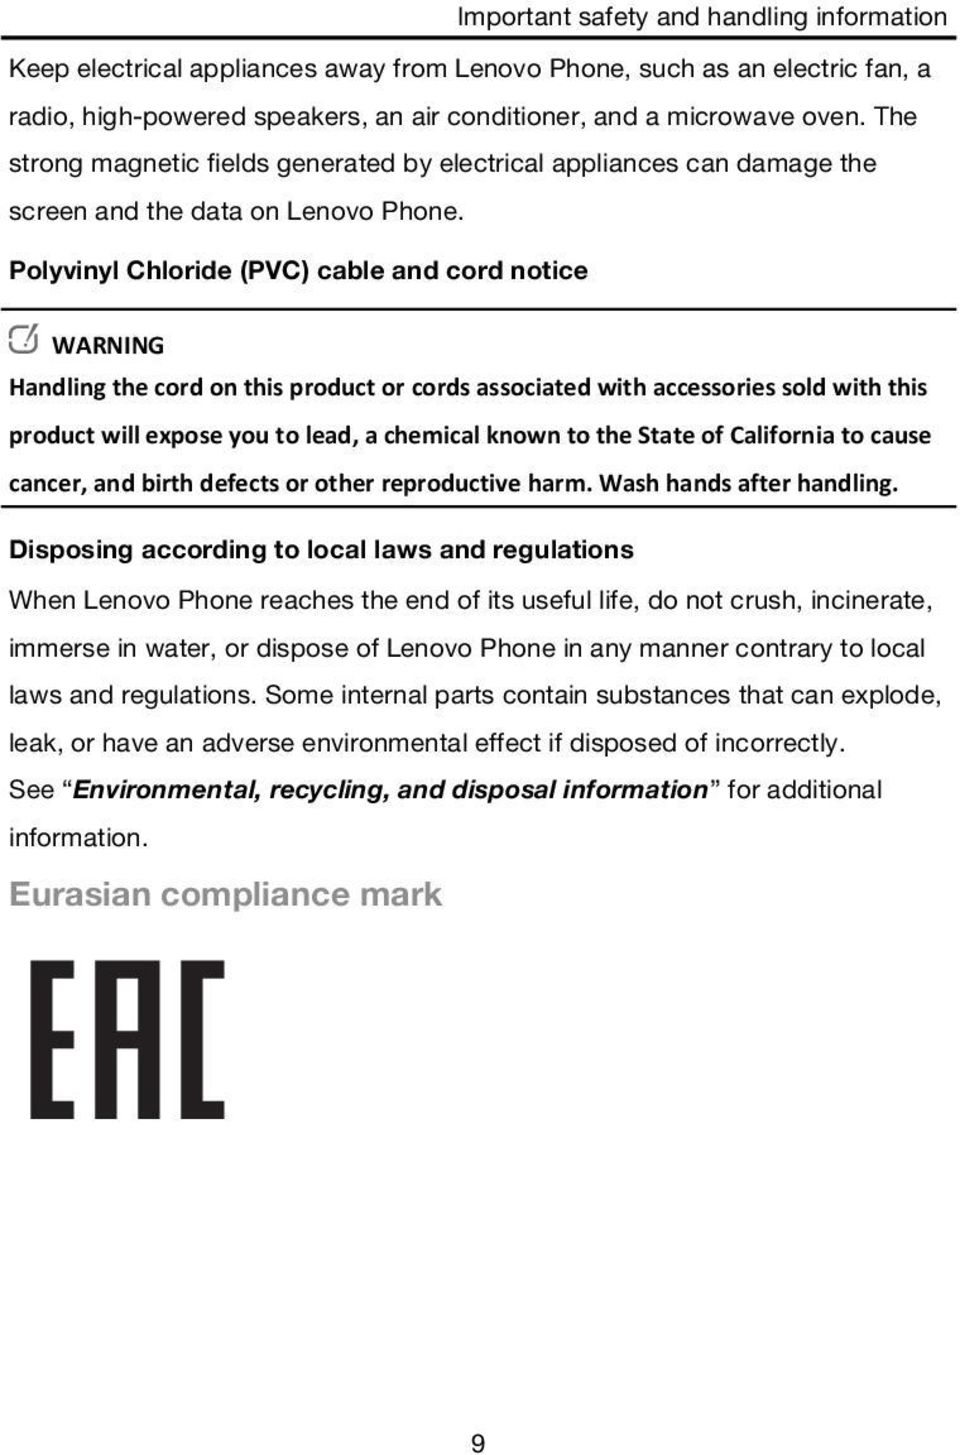 Polyvinyl Chloride (PVC) cable and cord notice WARNING Handling the cord on this product or cords associated with accessories sold with this product will expose you to lead, a chemical known to the